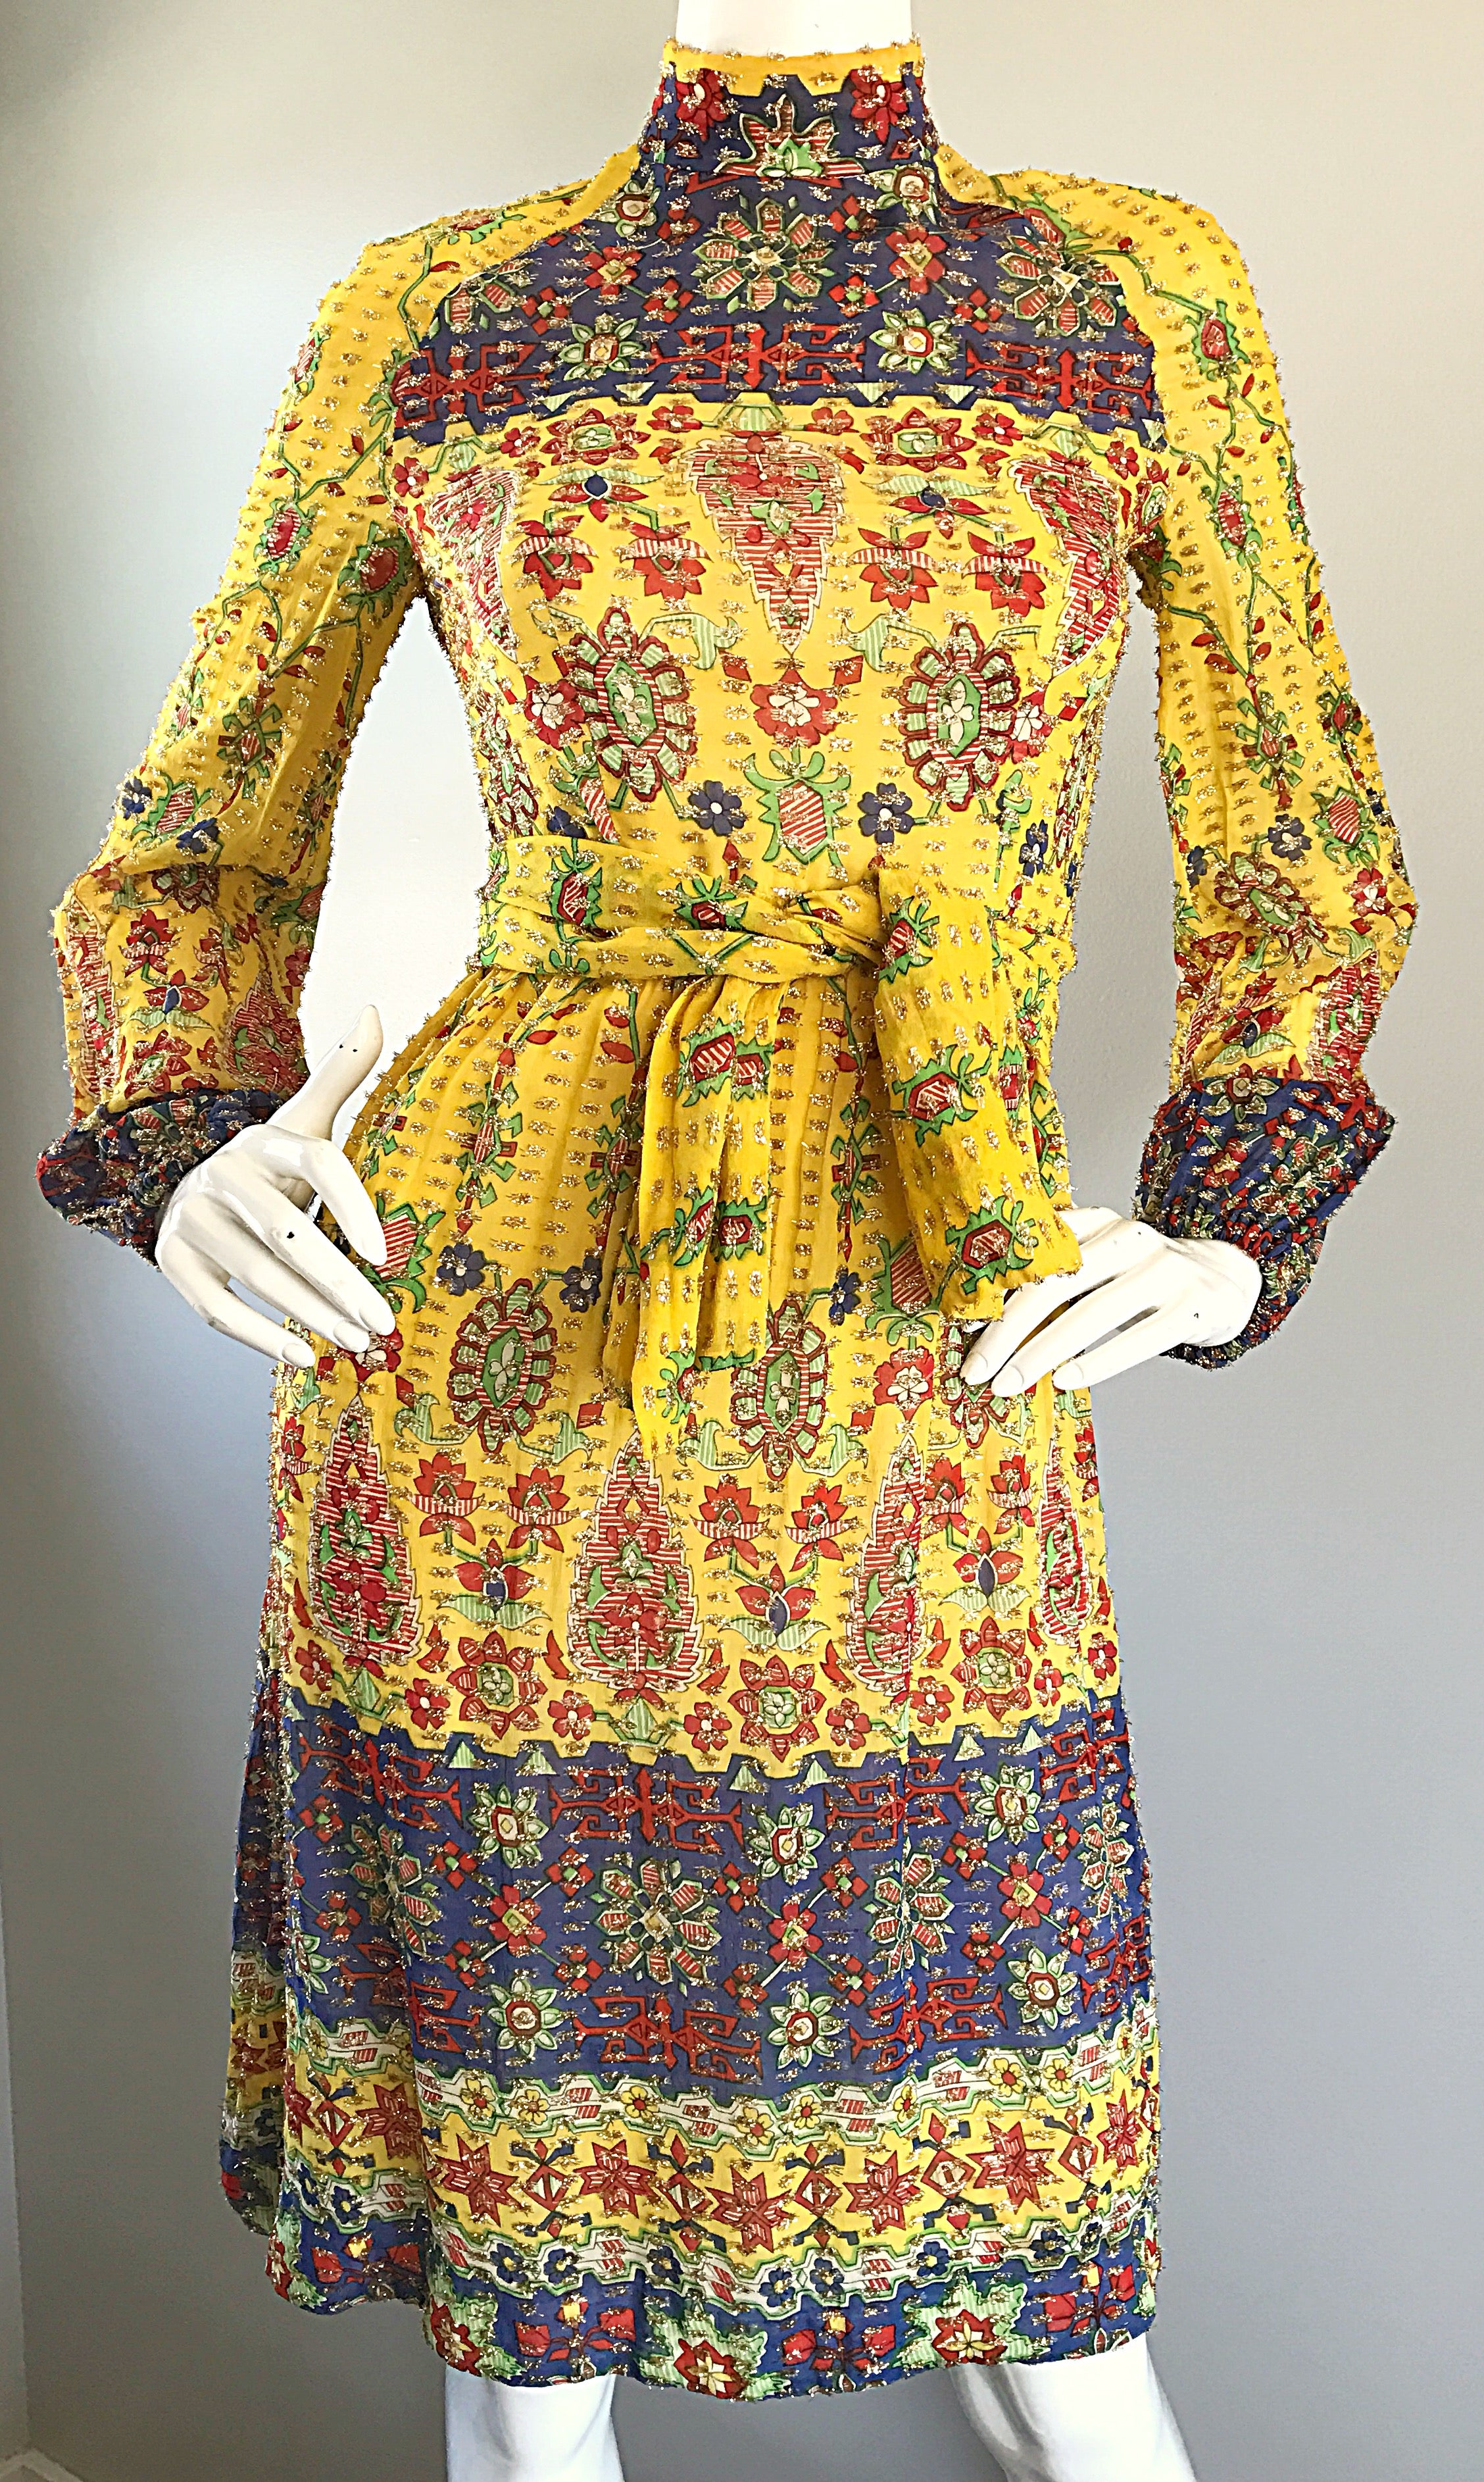 ecfb94b211 Amazing Vintage Rodrigues 1970s Yellow Silk 70s Dress and Head Scarf   Belt  For Sale at 1stdibs